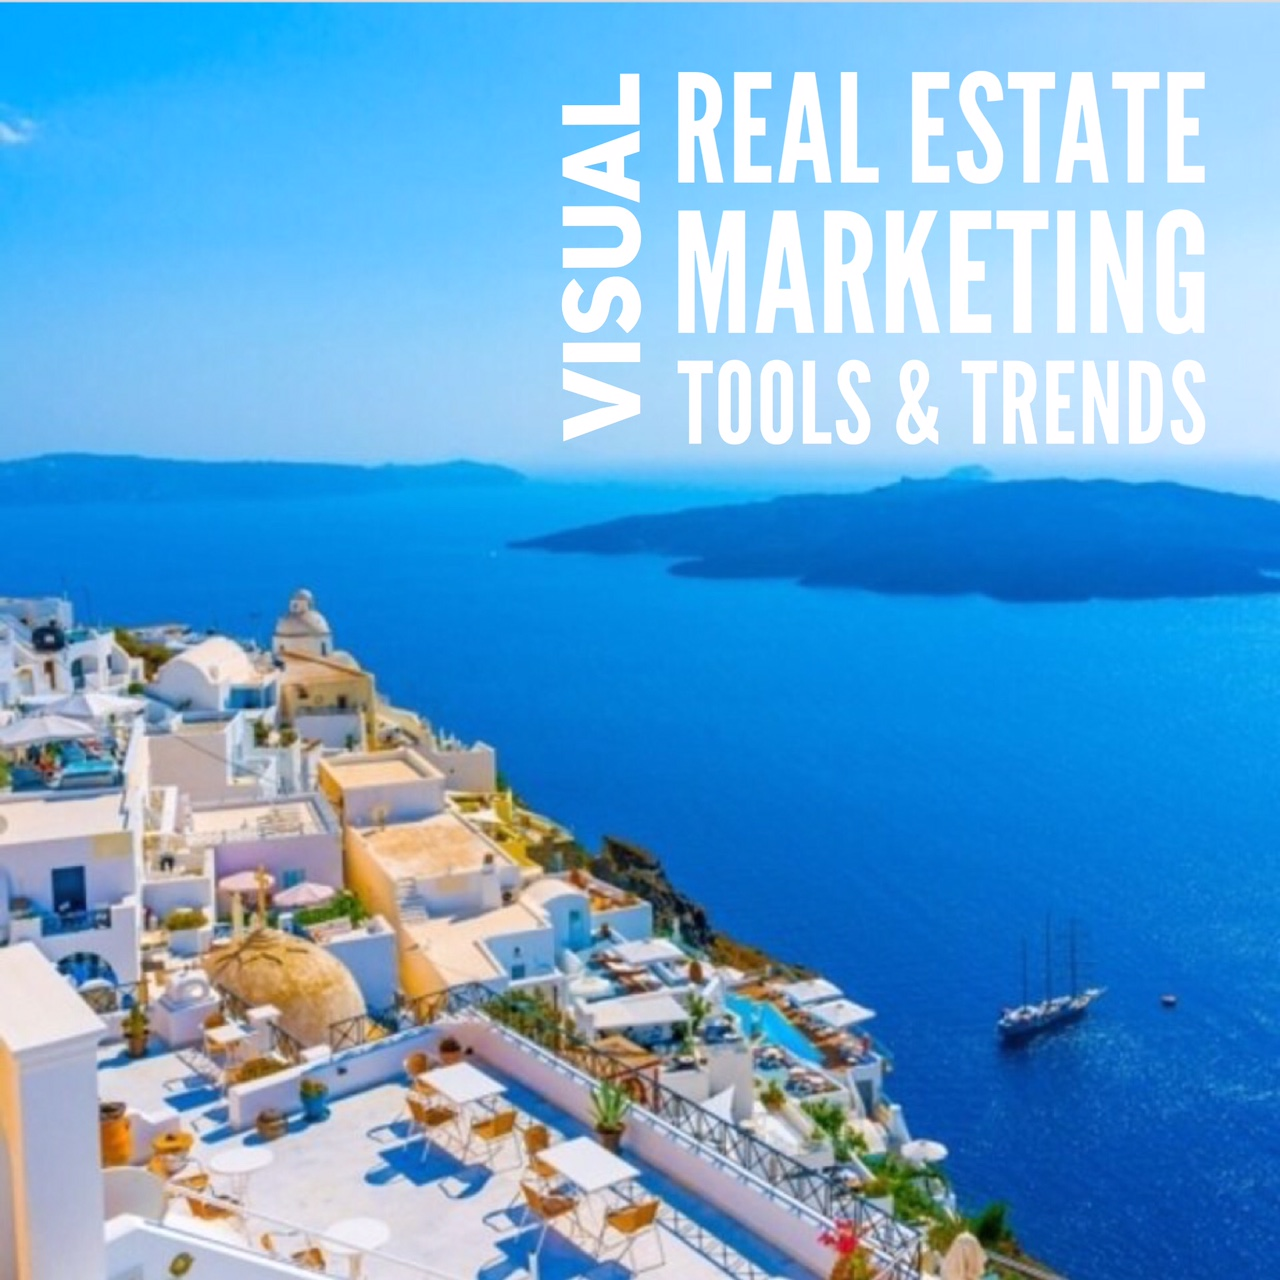 Hotel Marketing Tips and Tools